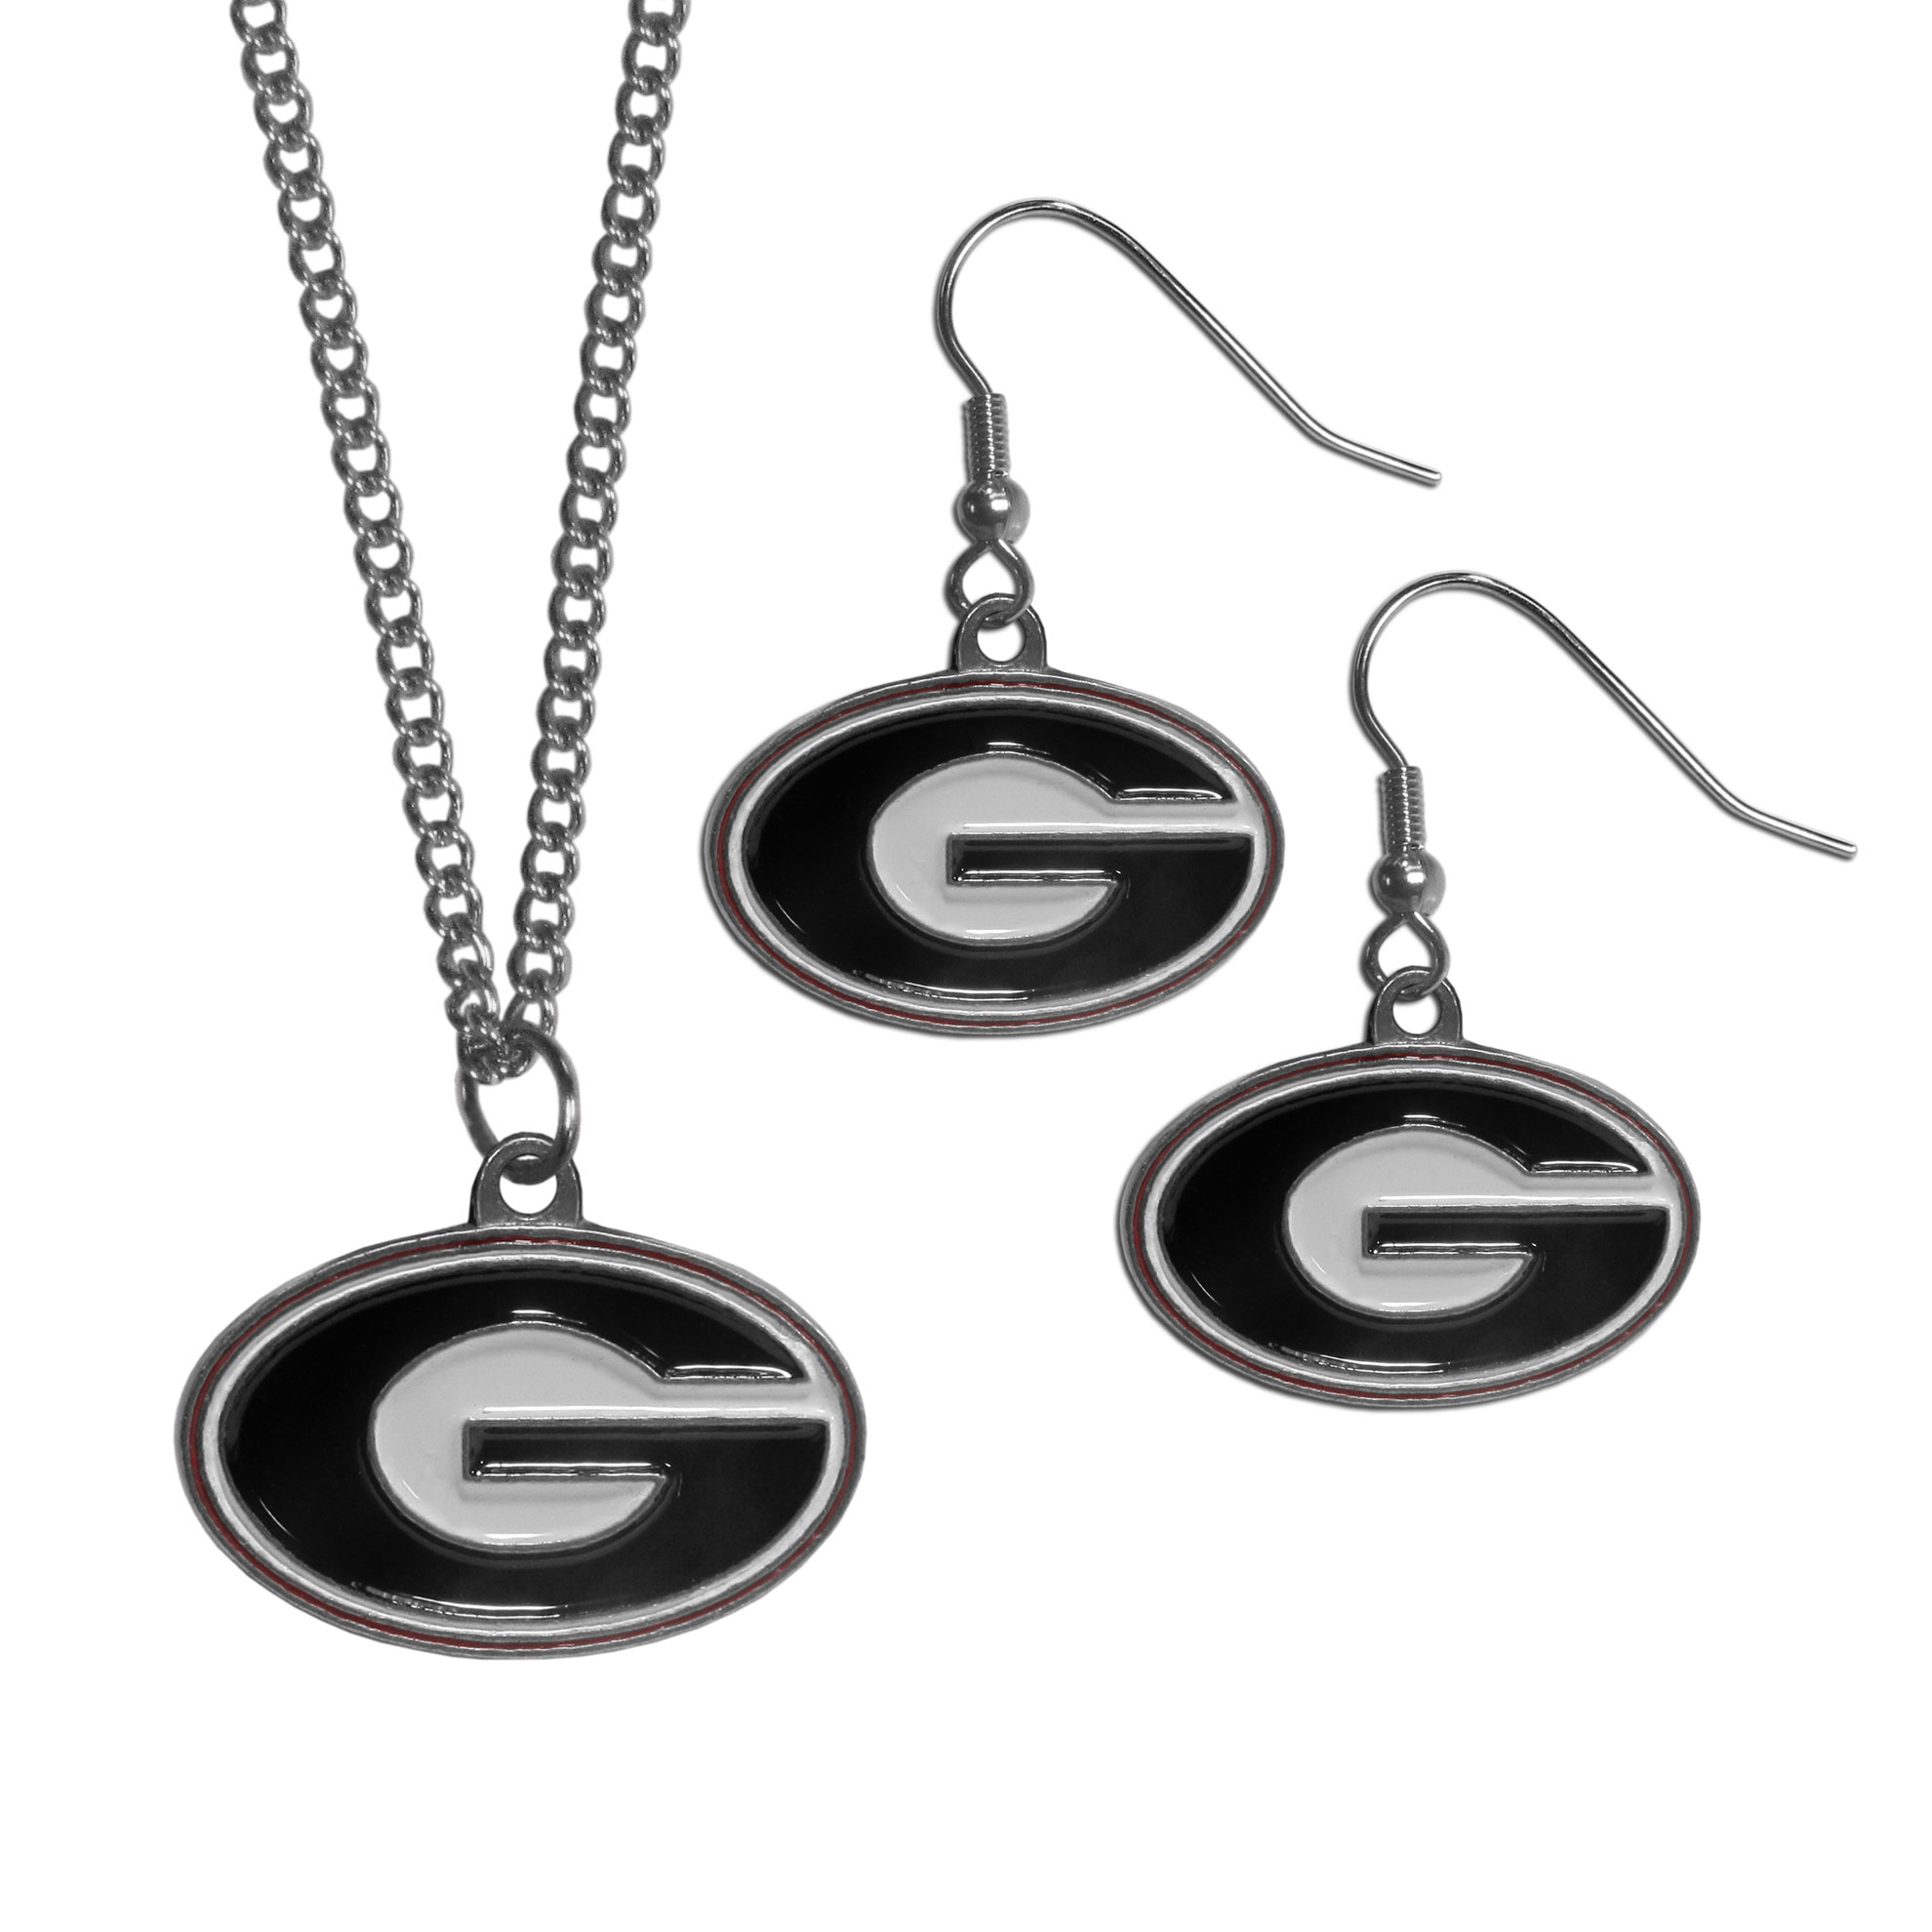 Georgia Bulldogs Dangle Earrings and Chain Necklace Set - This classic jewelry set contains are most popular Georgia Bulldogs dangle earrings and 22 inch chain necklace. The trendy, dangle earrings are lightweight and feature a fully cast metal team charm with enameled team colors. The matching necklace completes this fashion forward combo and is a spirited set that is perfect for game day but nice enough for everyday.